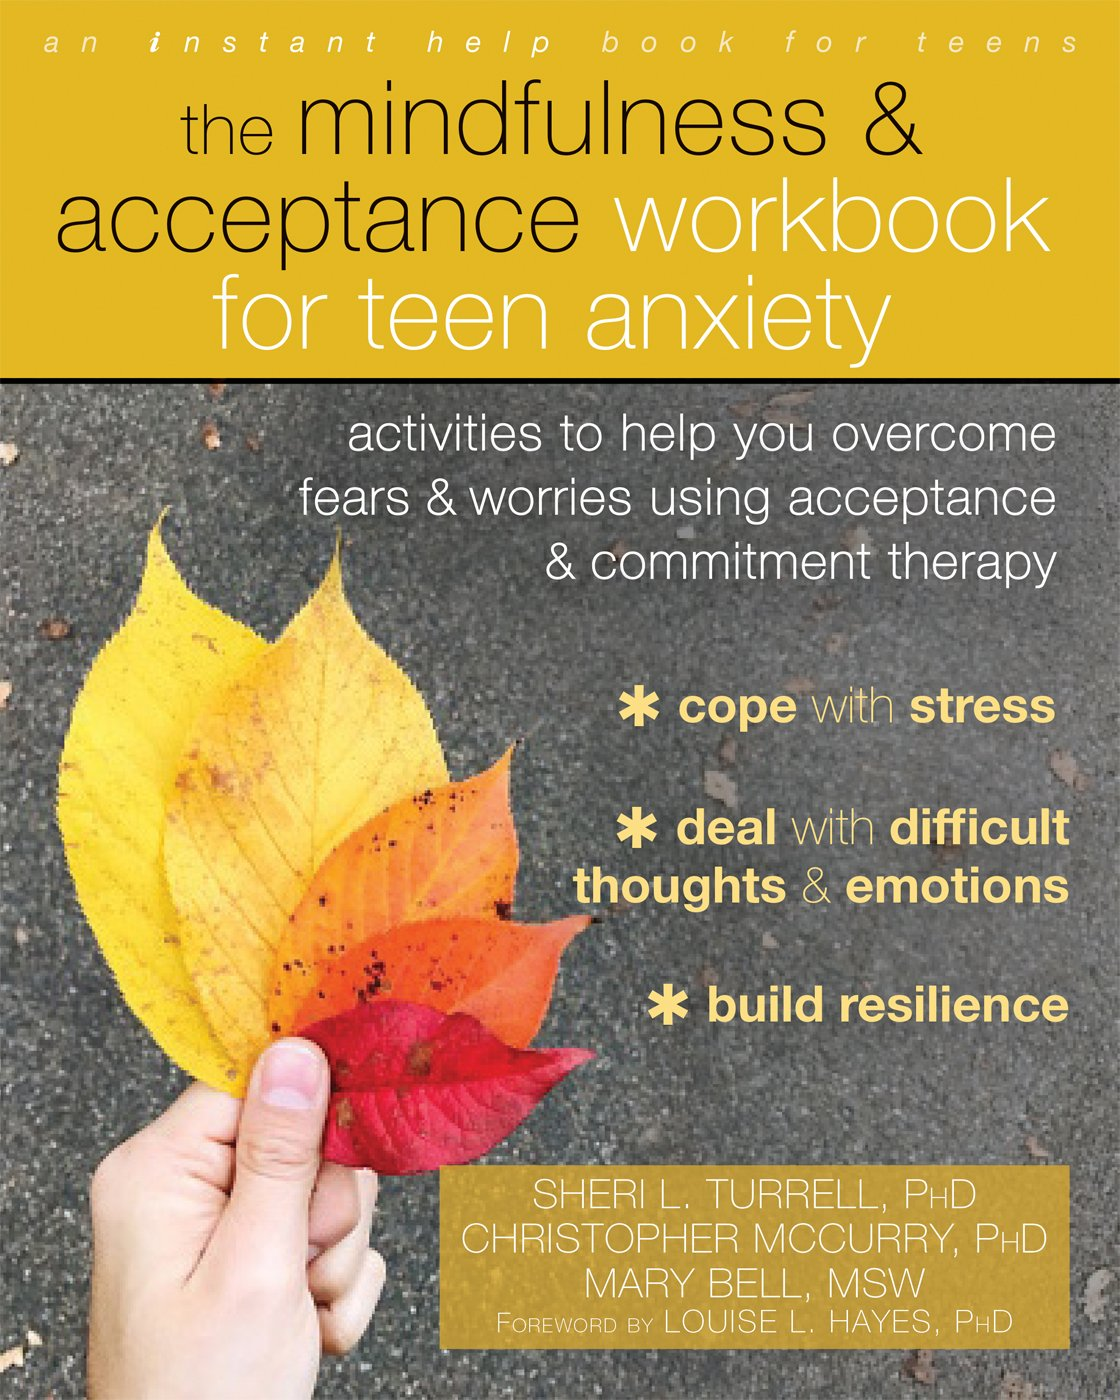 Amazon.com: The Mindfulness and Acceptance Workbook for Teen ...